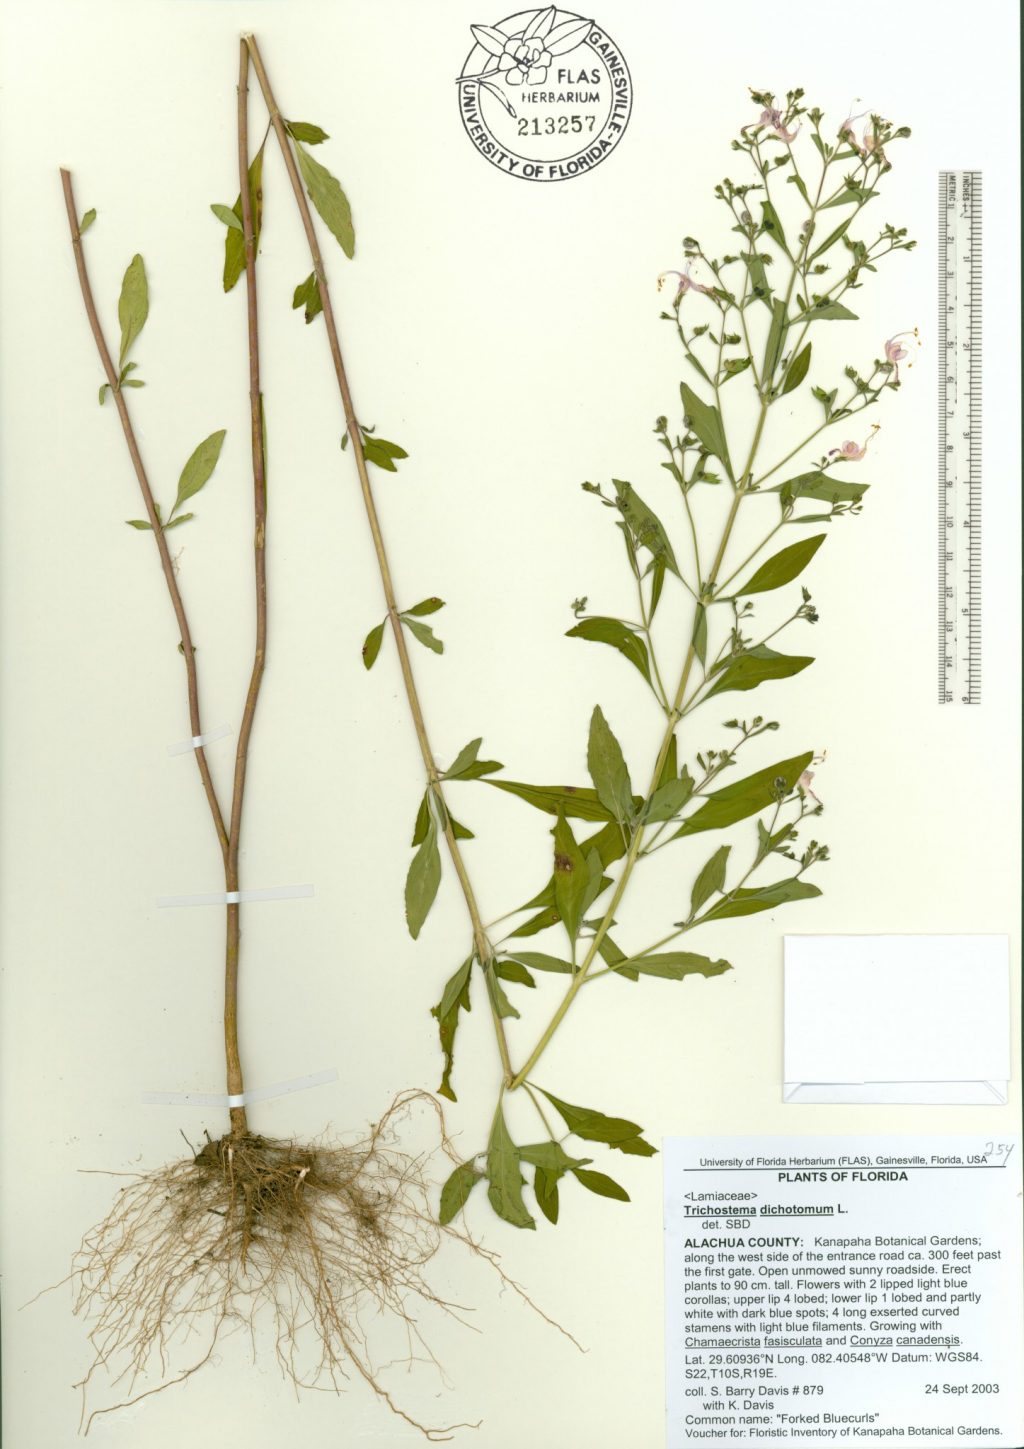 A herbarium specimen featuring a tall plant with small, blue flowers